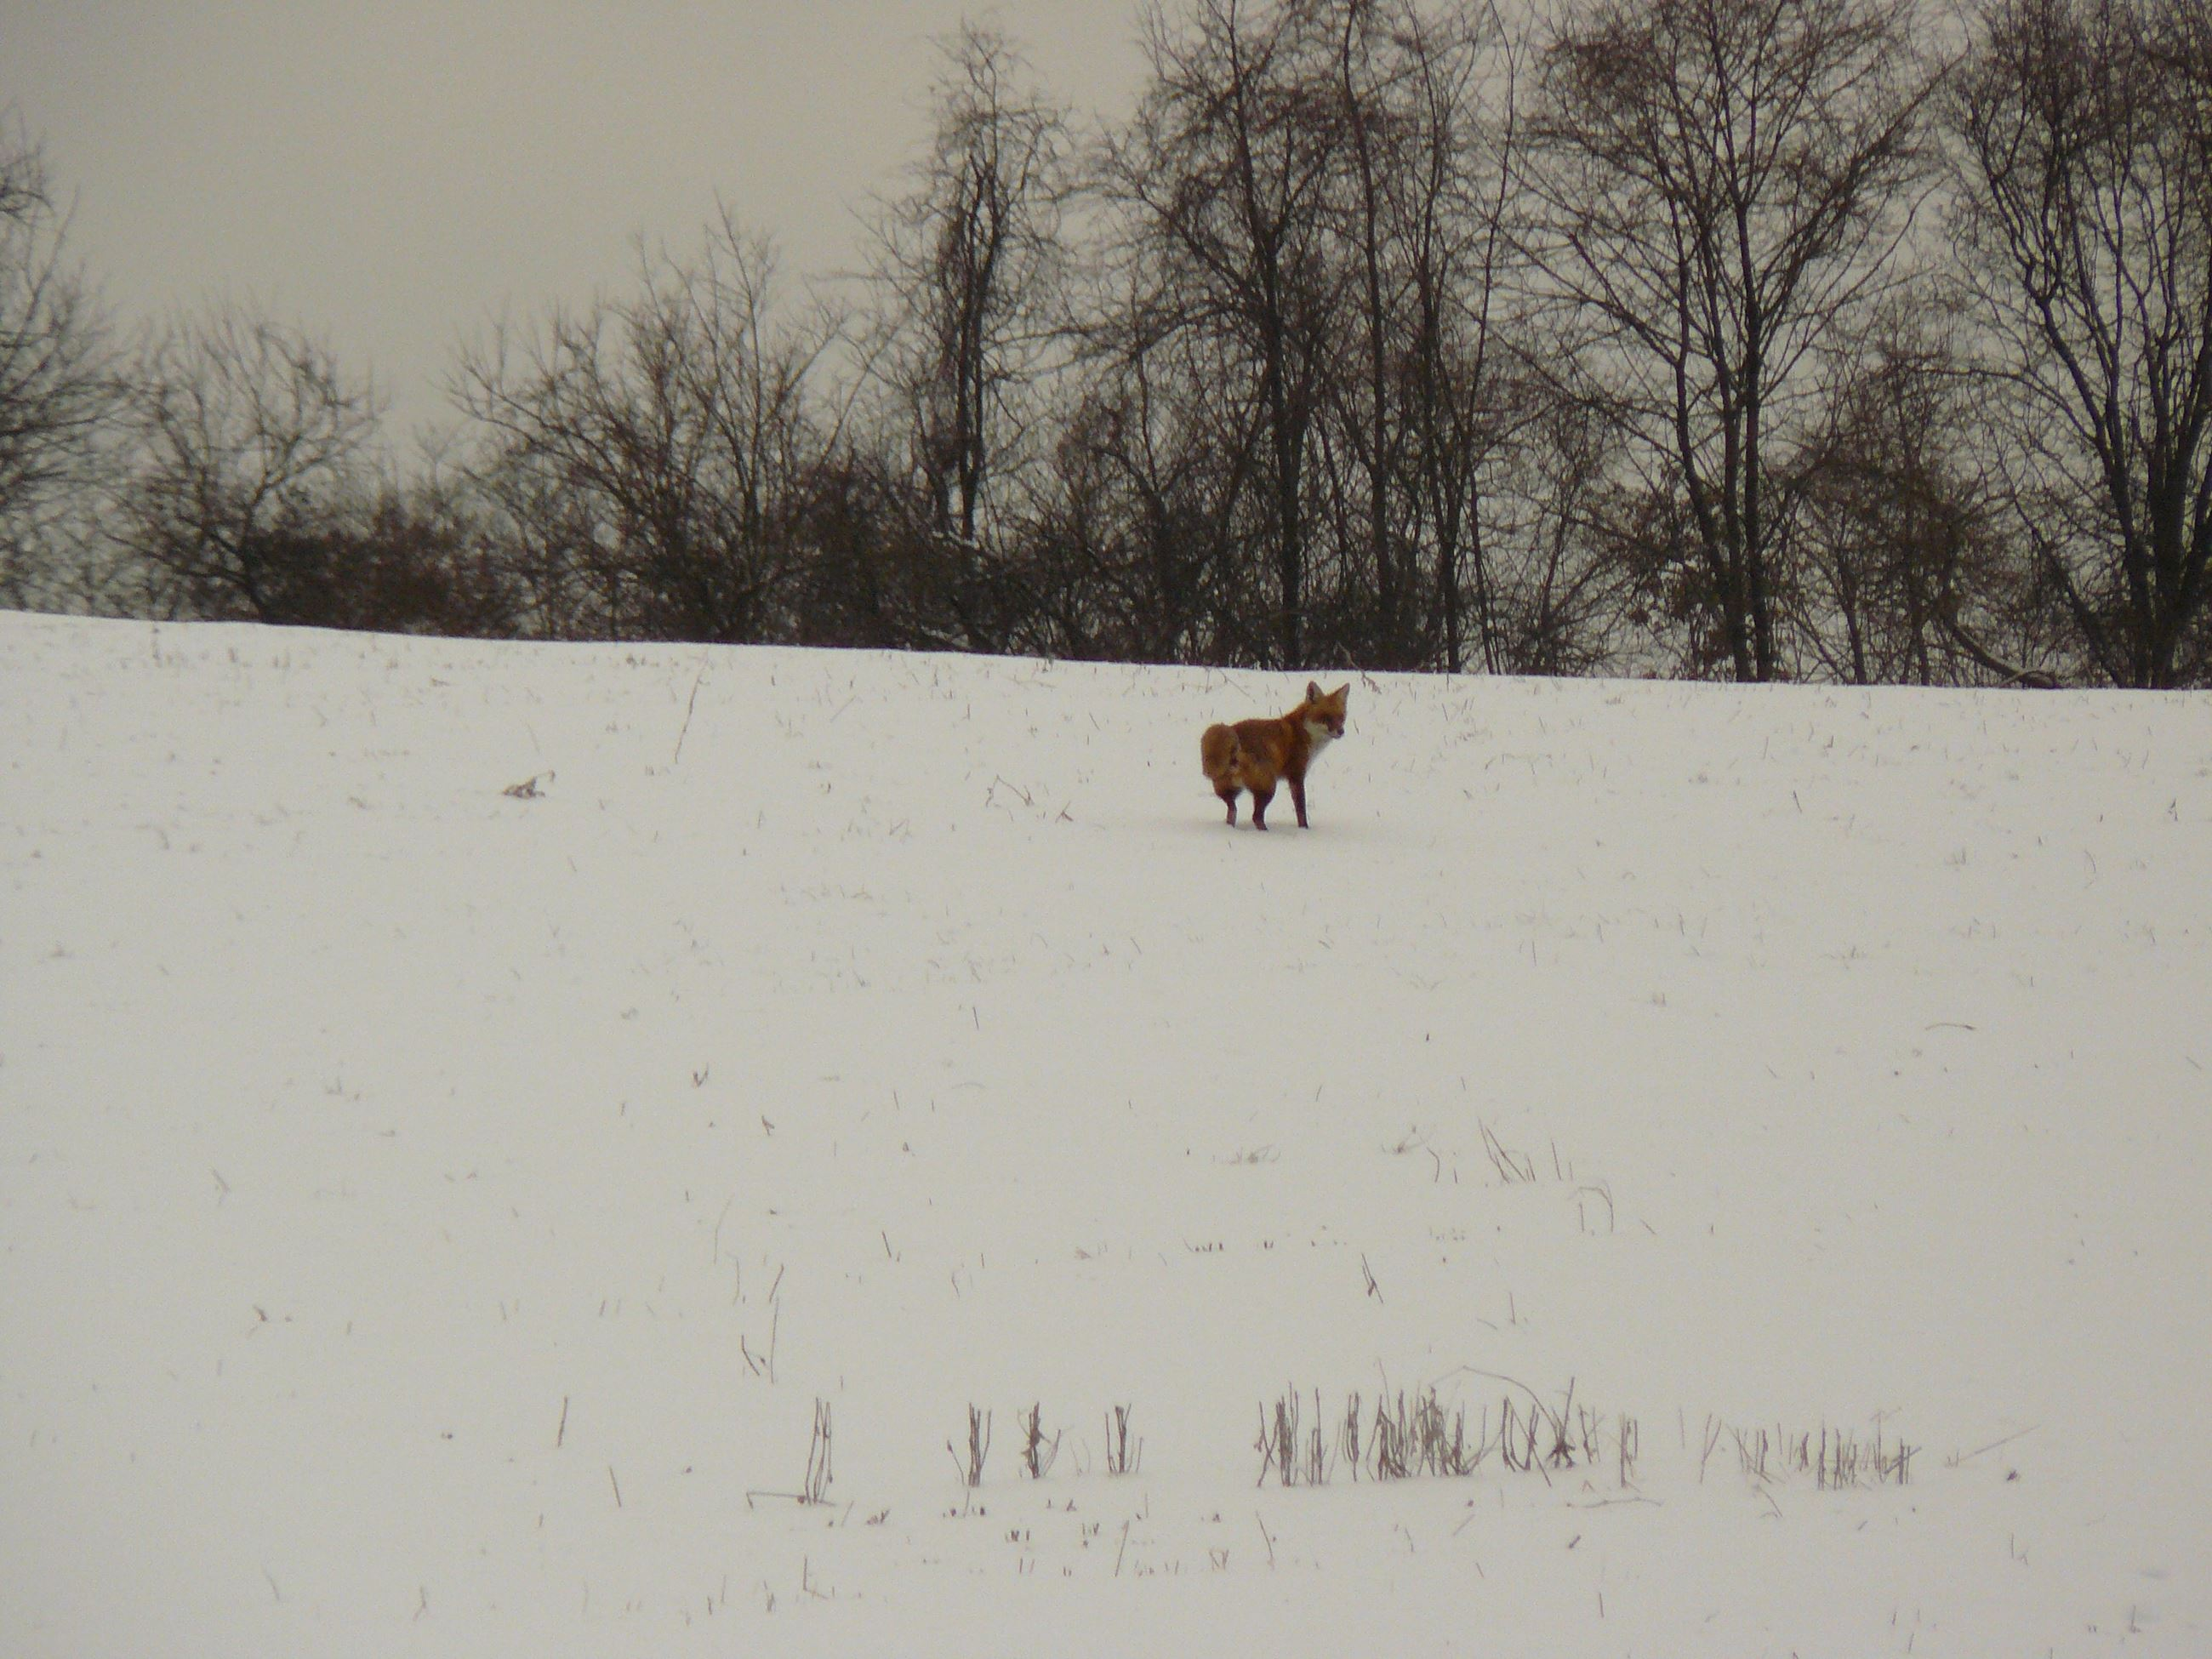 A red fox at Norristown Farm Park